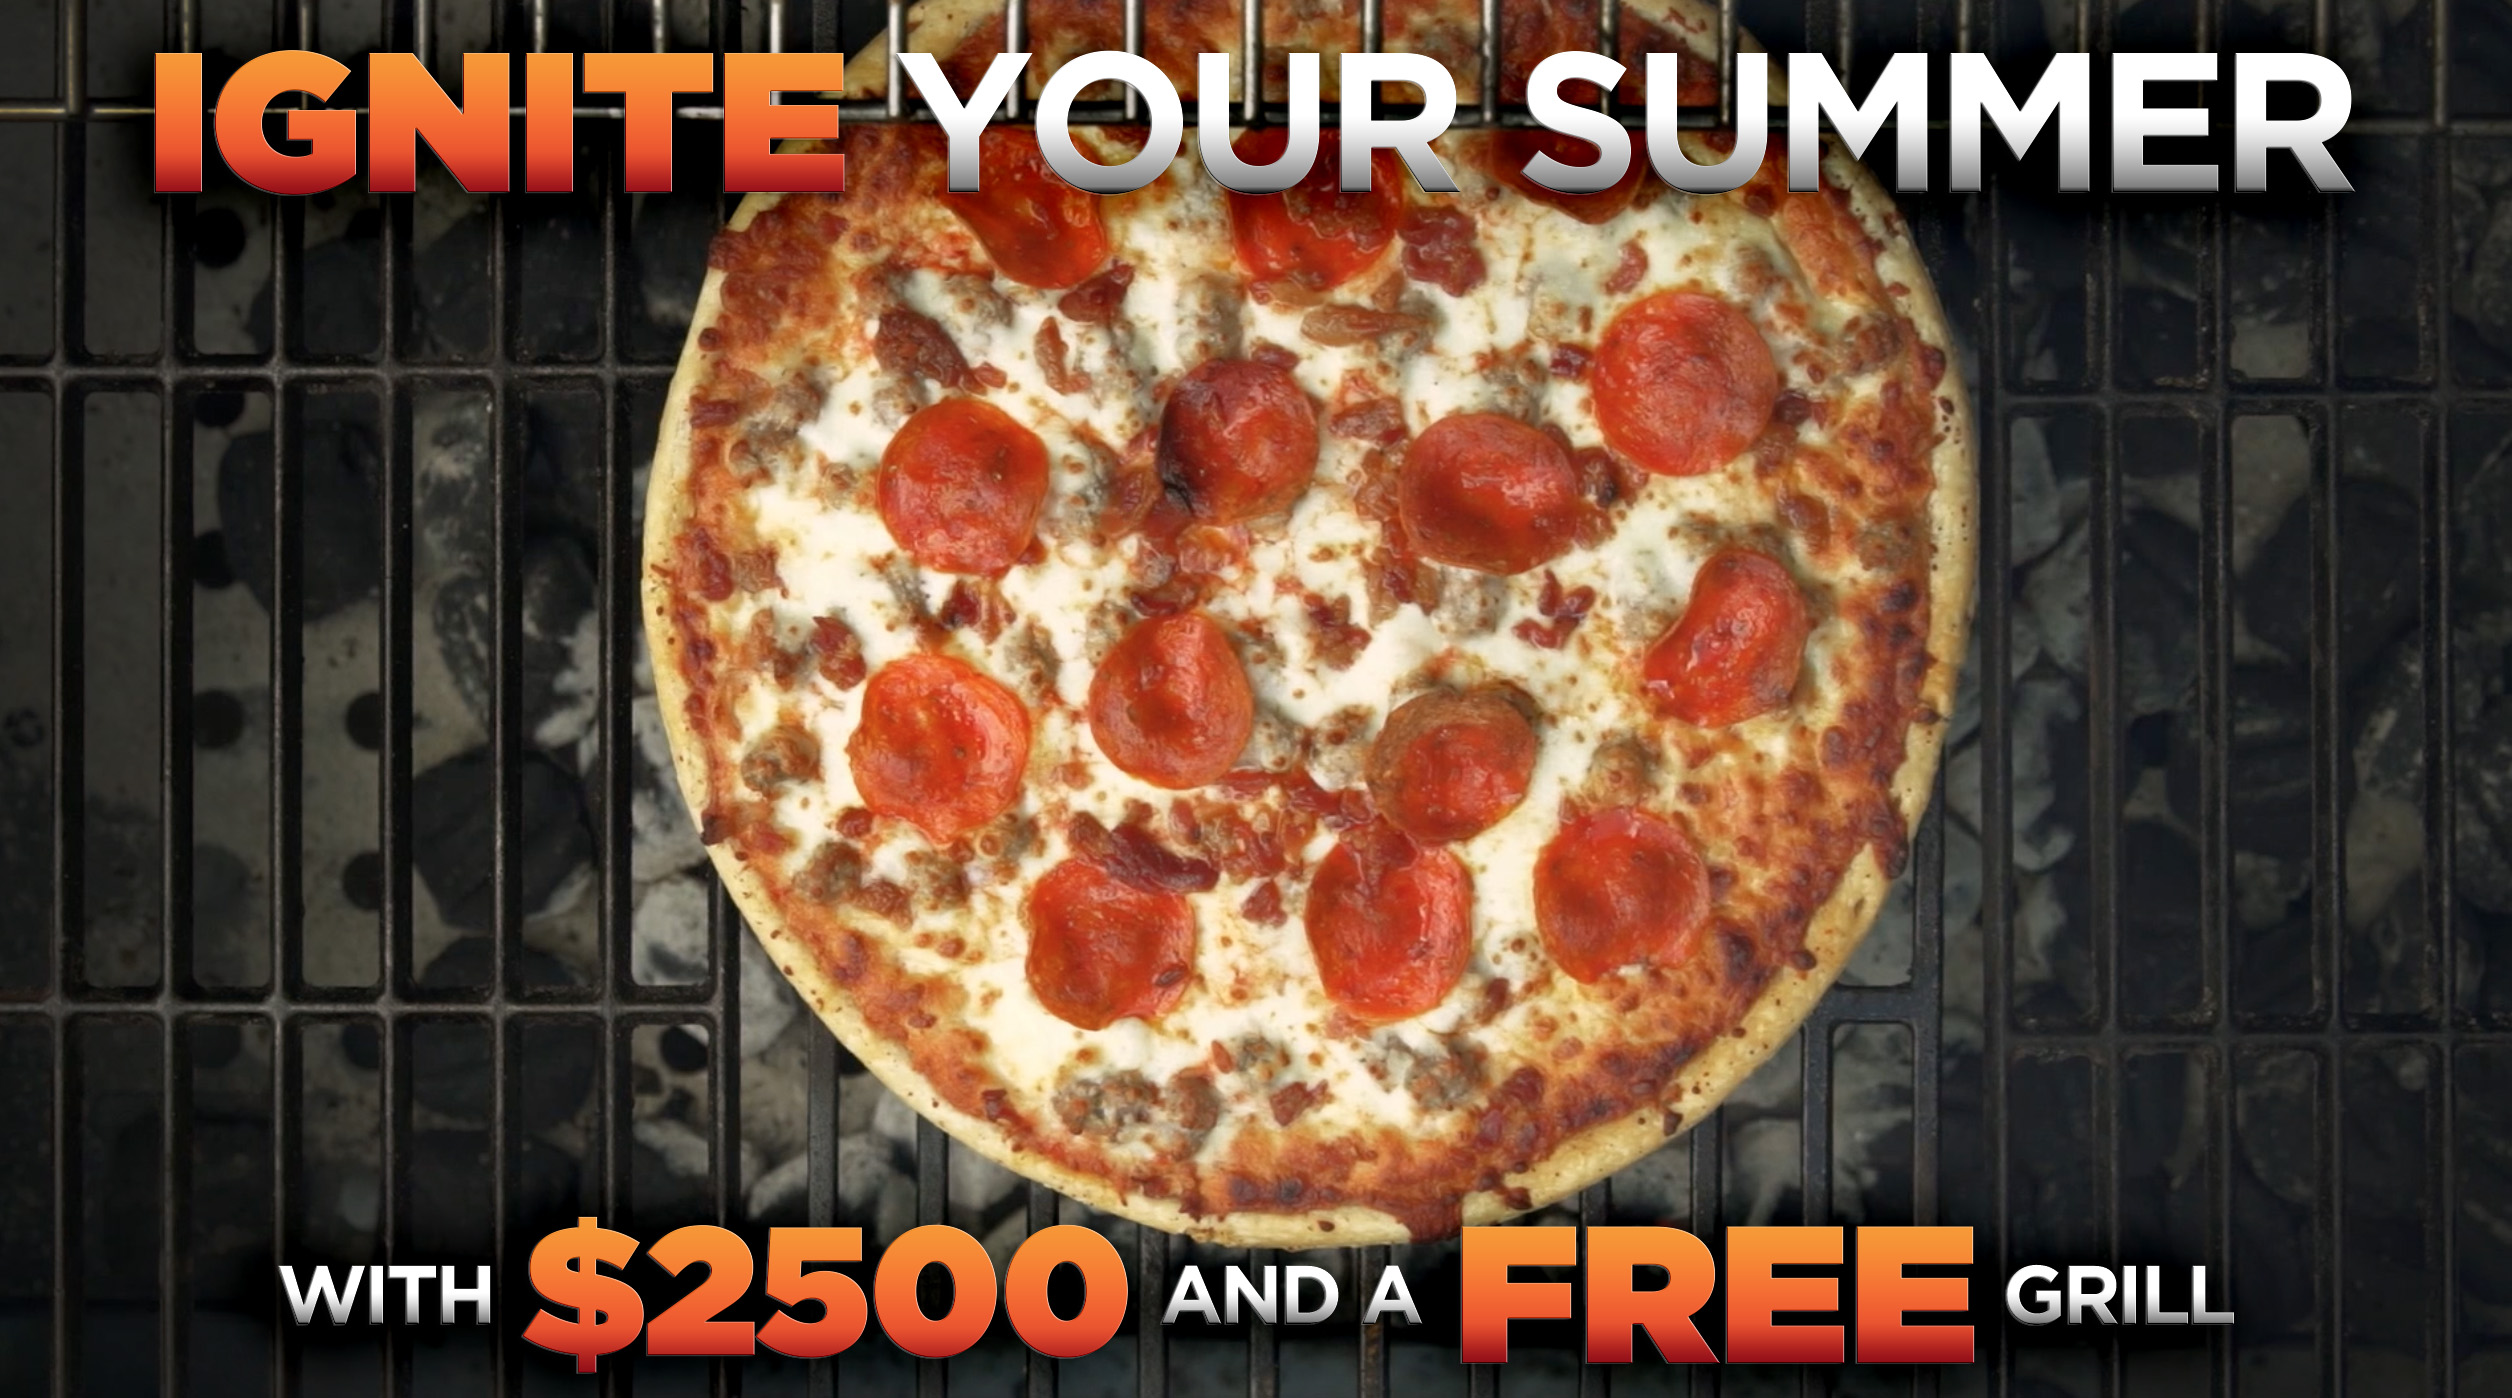 Ignite your Summer Sweeps is BACK - Featured Image